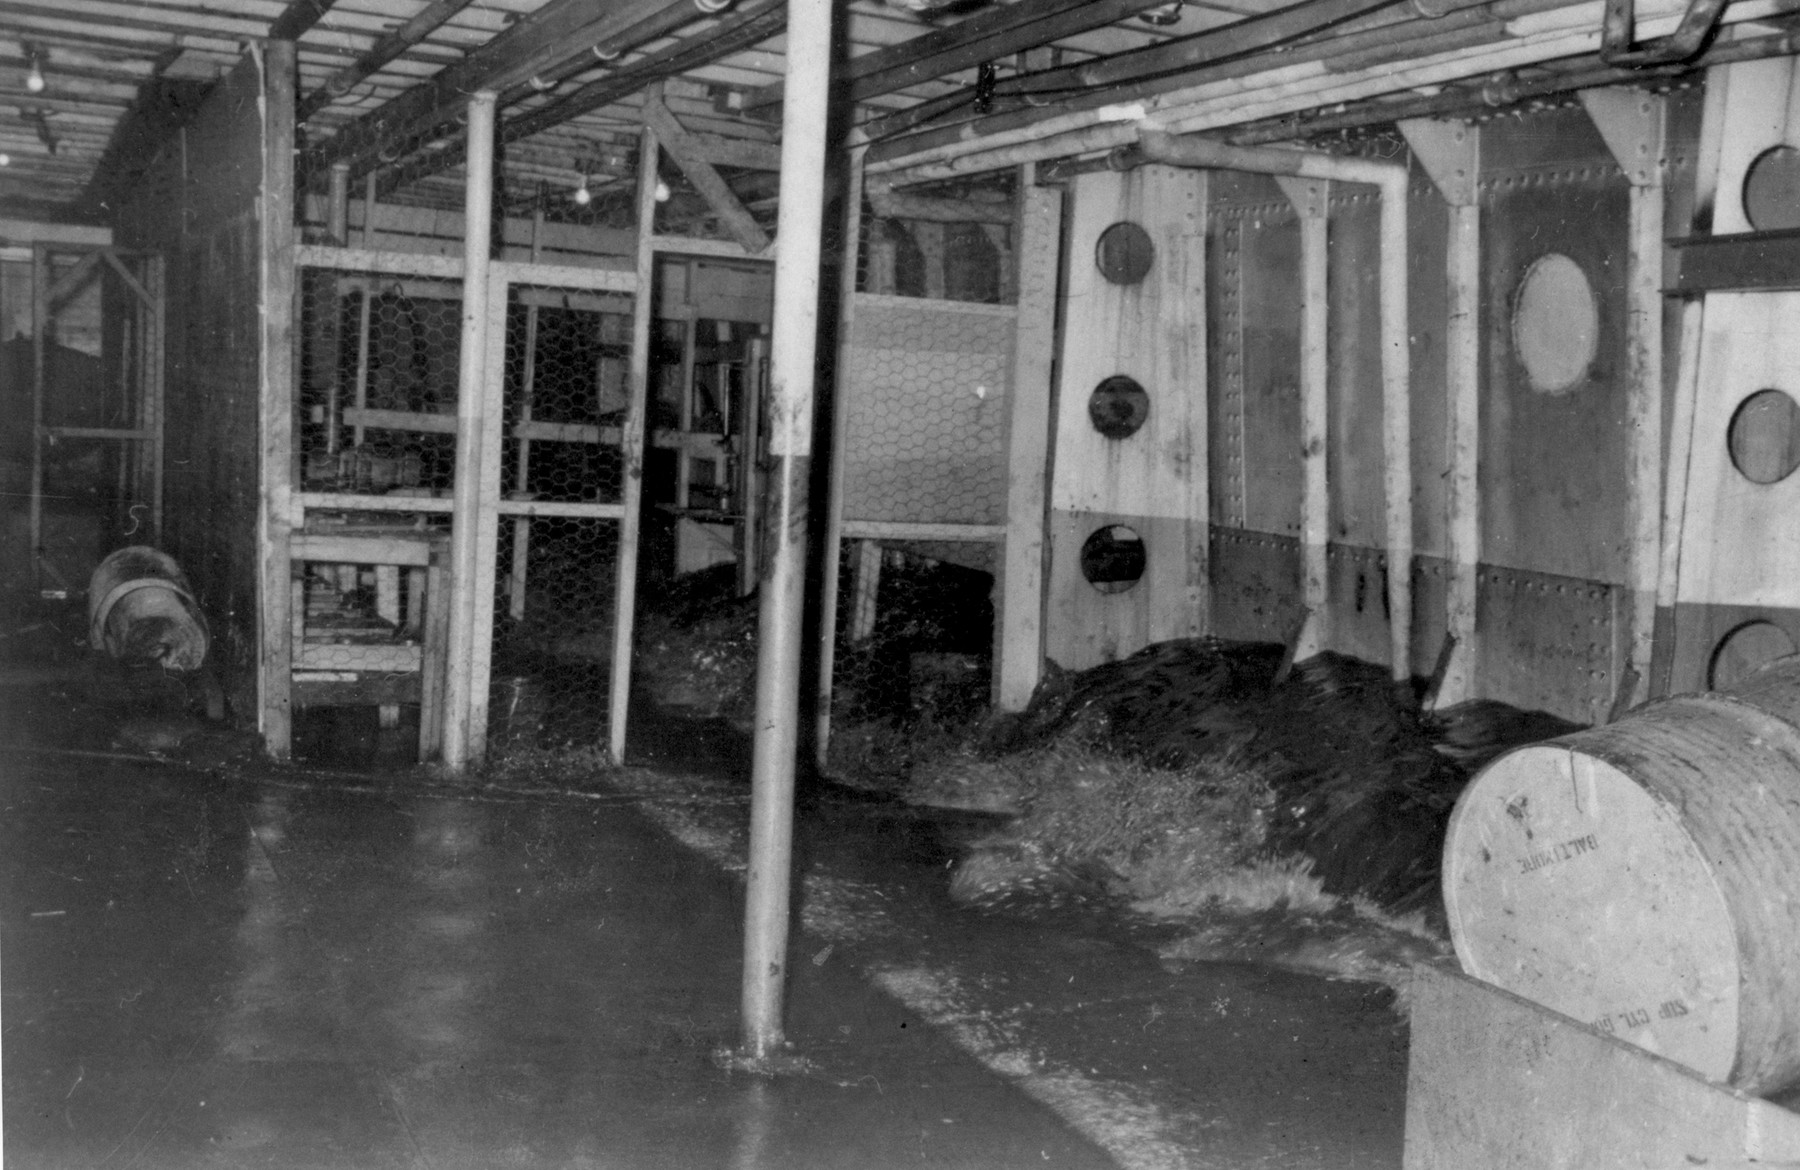 View of the flooded hold of the President Warfield after the gale that nearly sank the ship during its first attempt to cross the Atlantic Ocean.